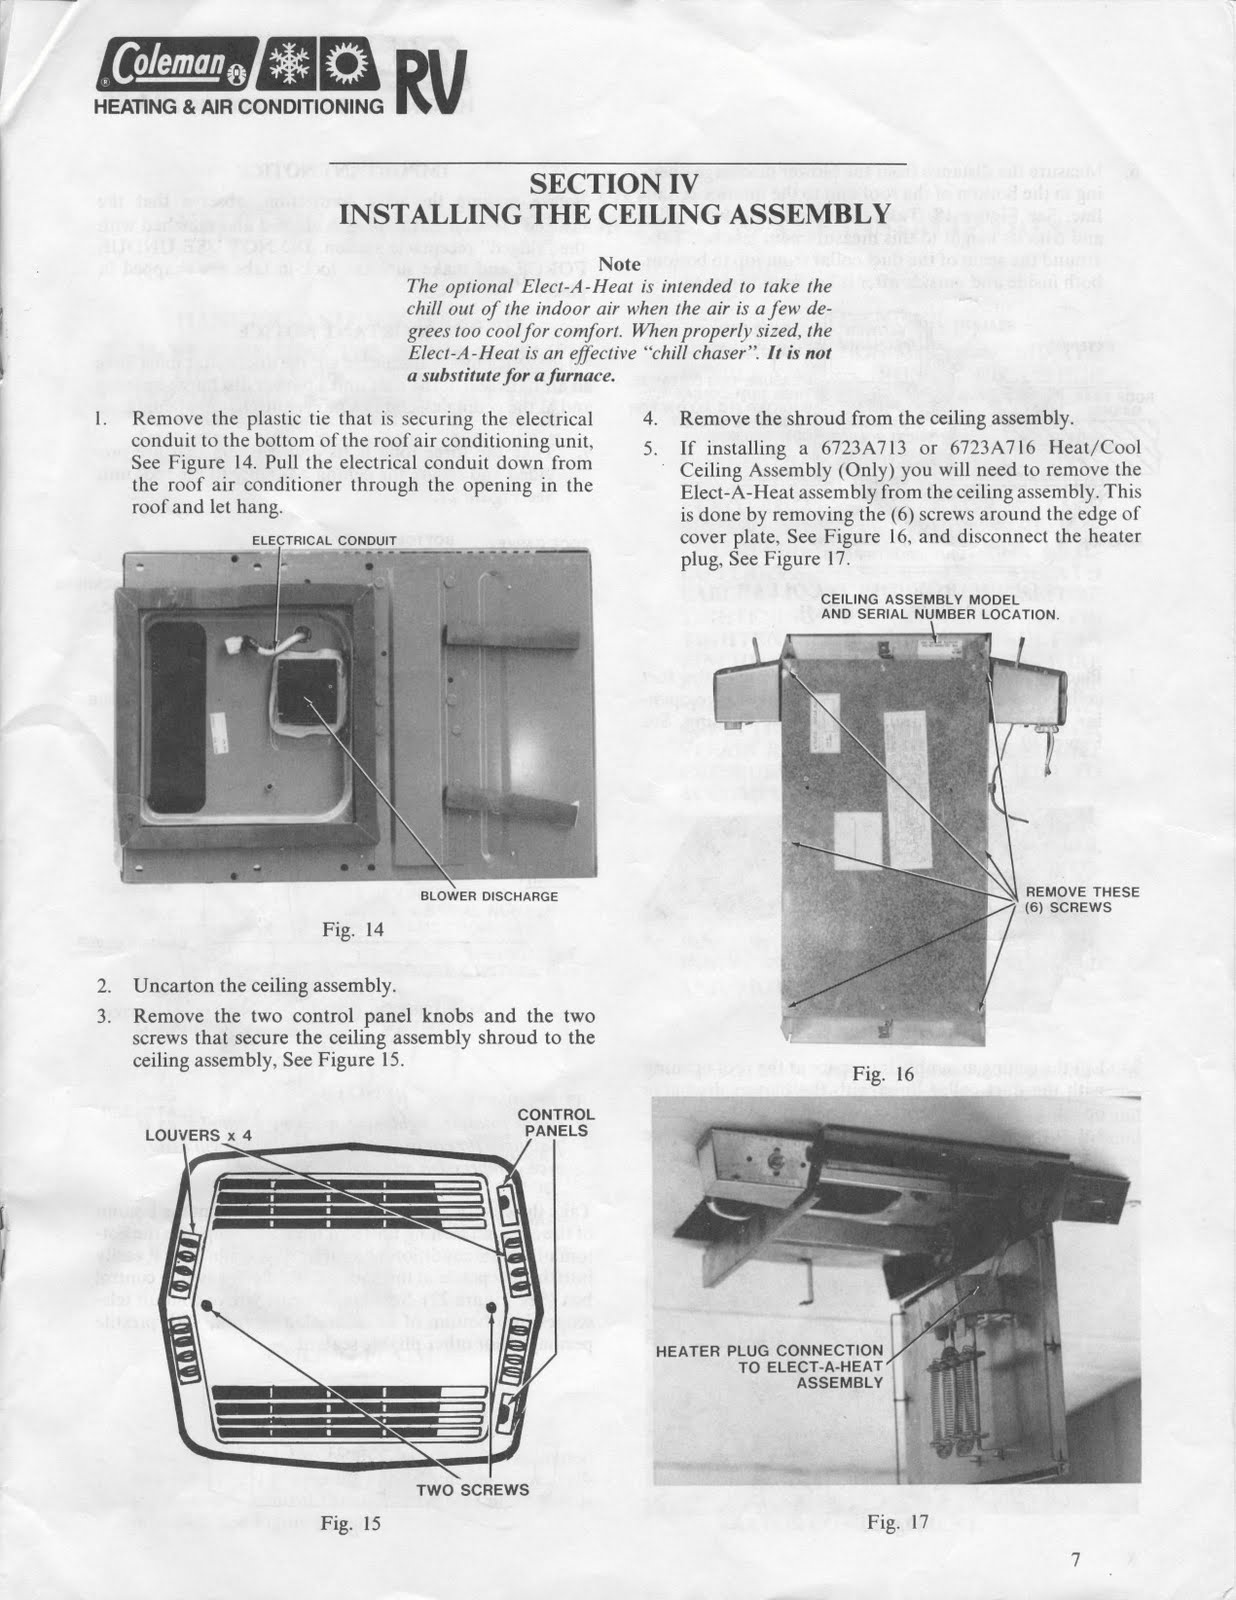 coleman wiring diagram manual coleman image wiring 1983 fleetwood pace arrow owners manuals rv air conditioners on coleman wiring diagram manual